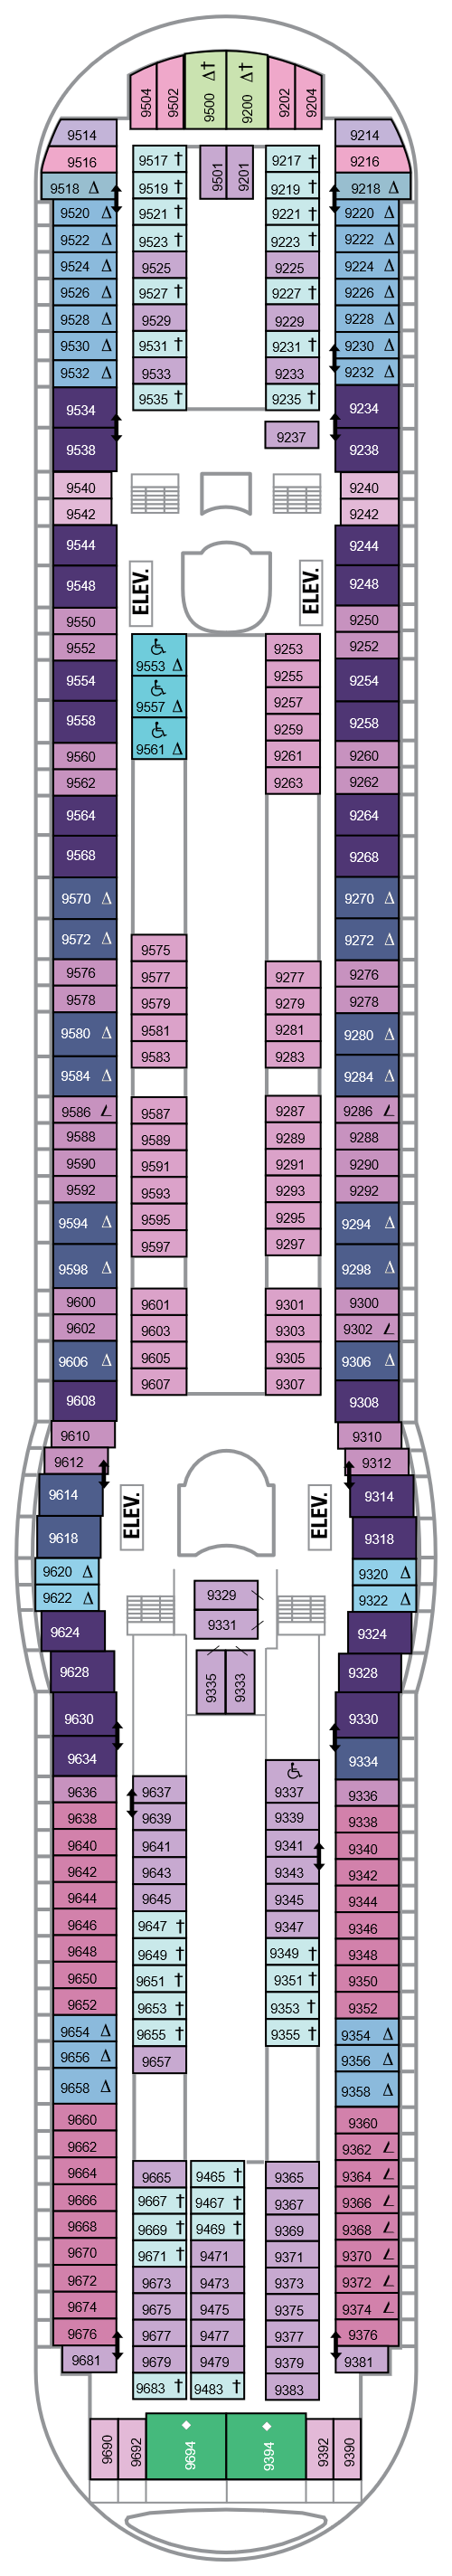 Navigator Of The Seas Deck 9 layout